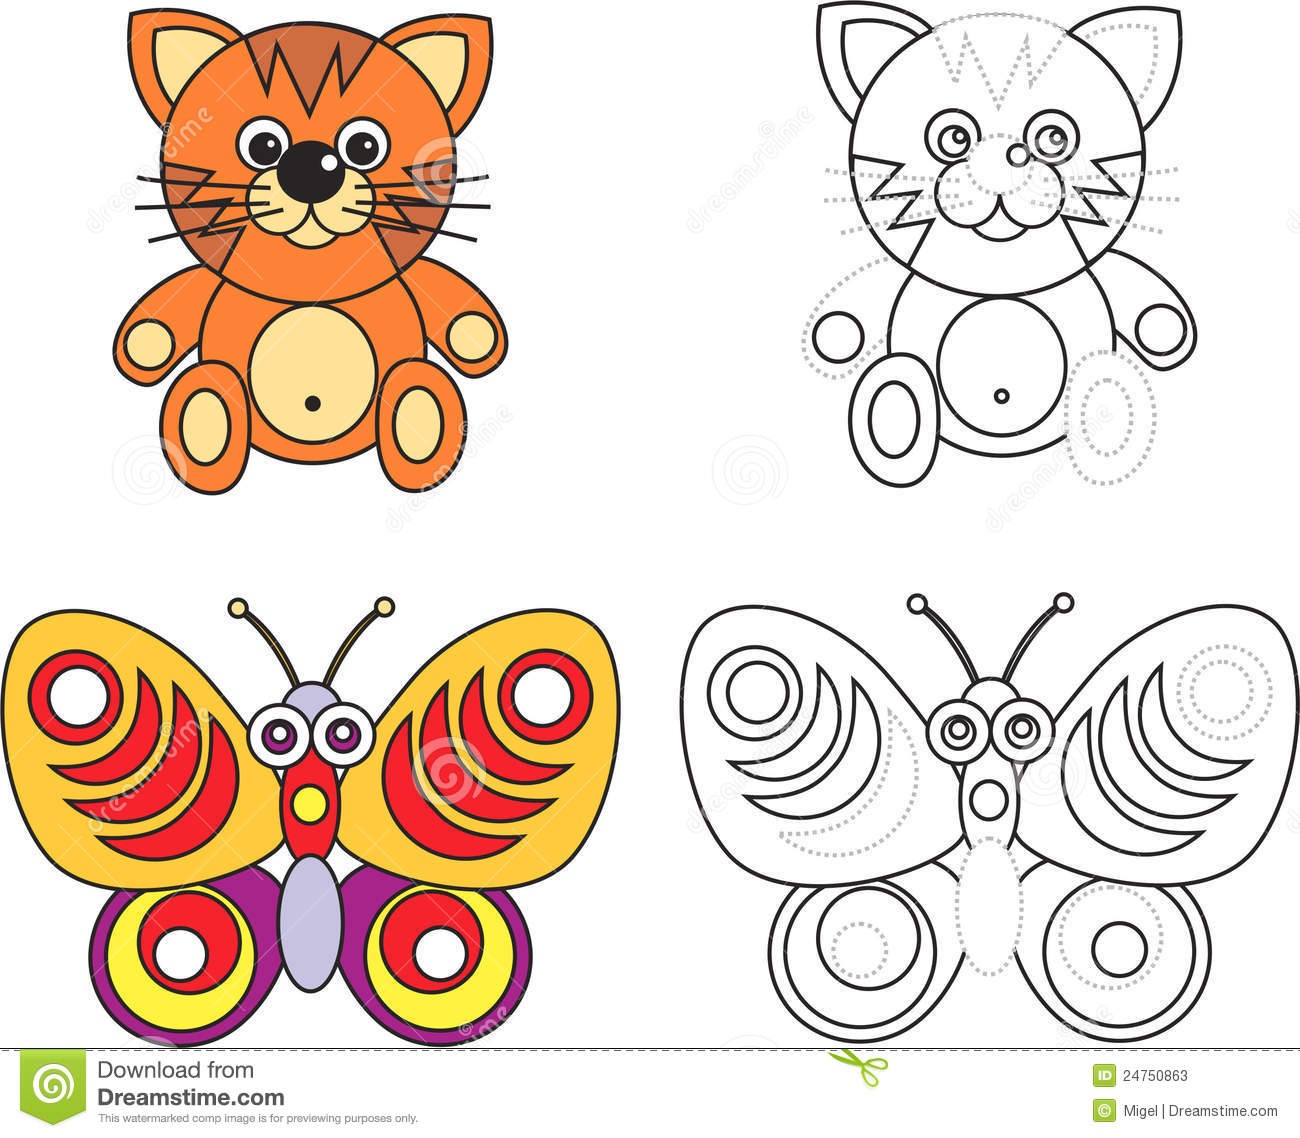 coloring page book for kids - Kids Color Book